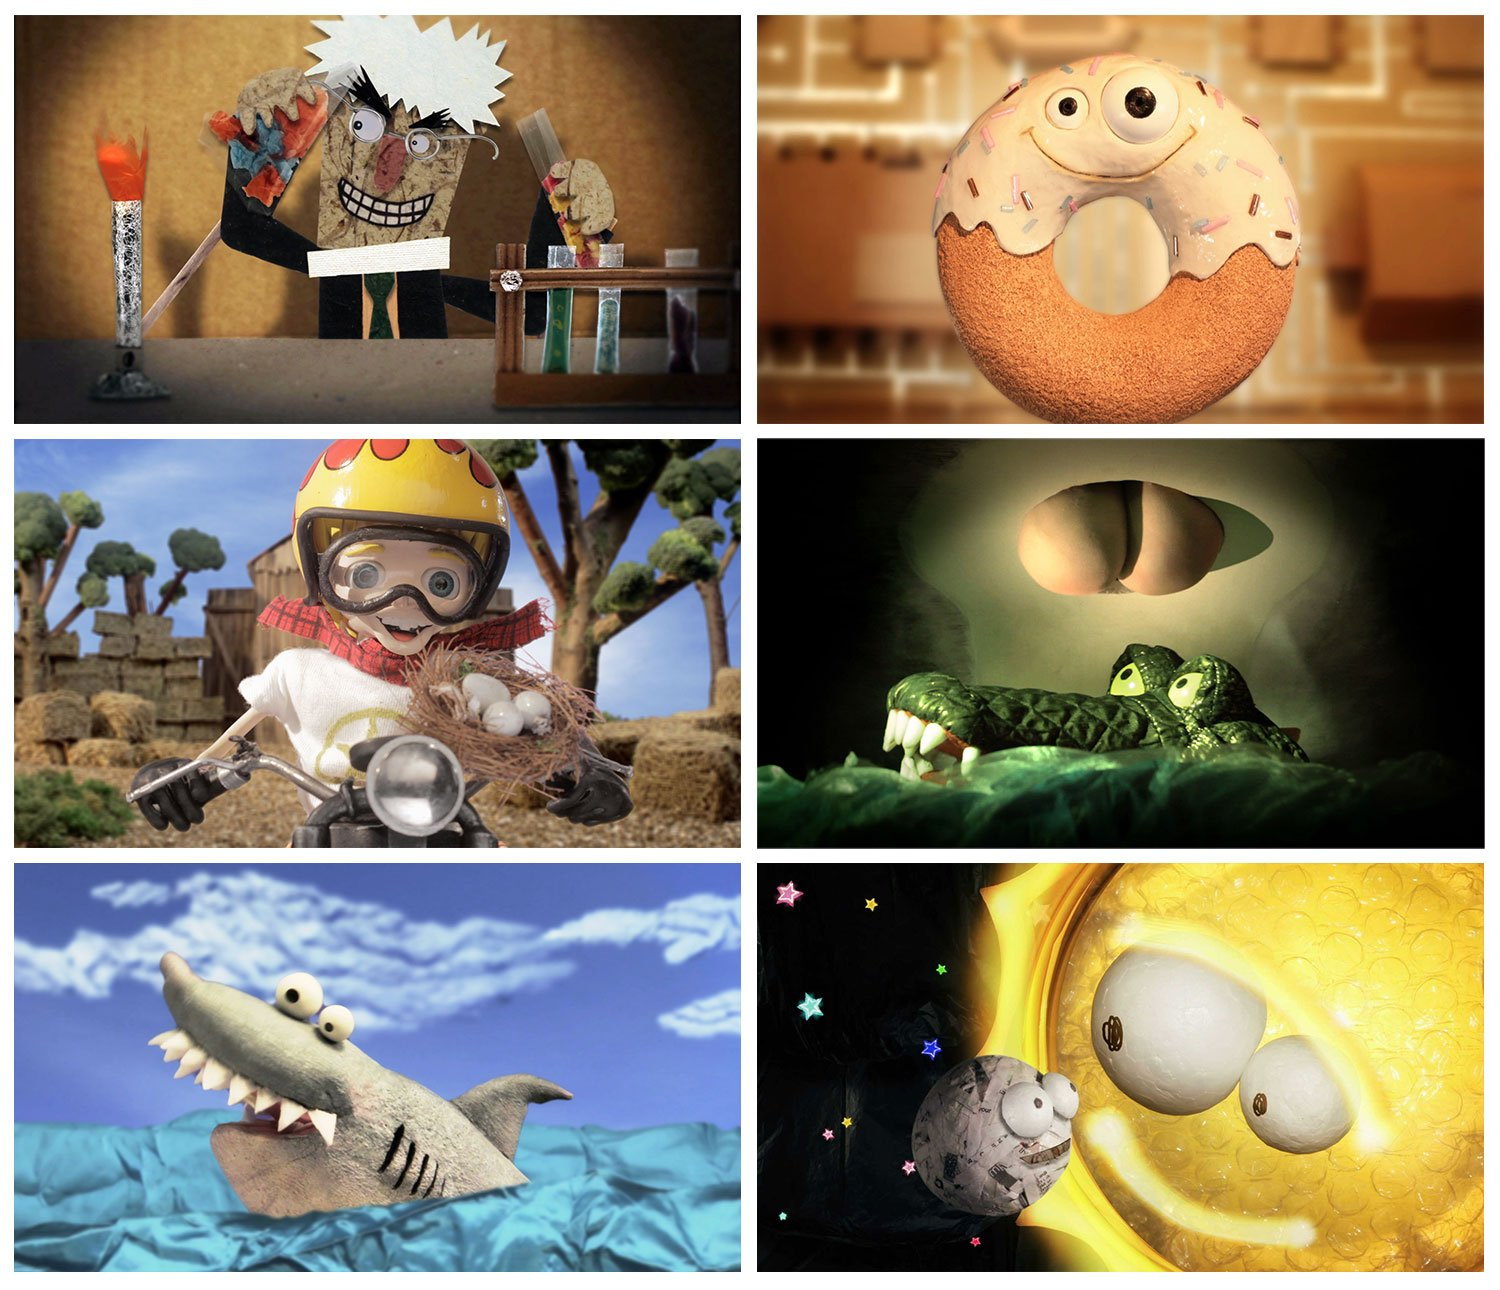 Compilation of six still frames from Citv Share A Story Puppetry and Stop Motion Animations